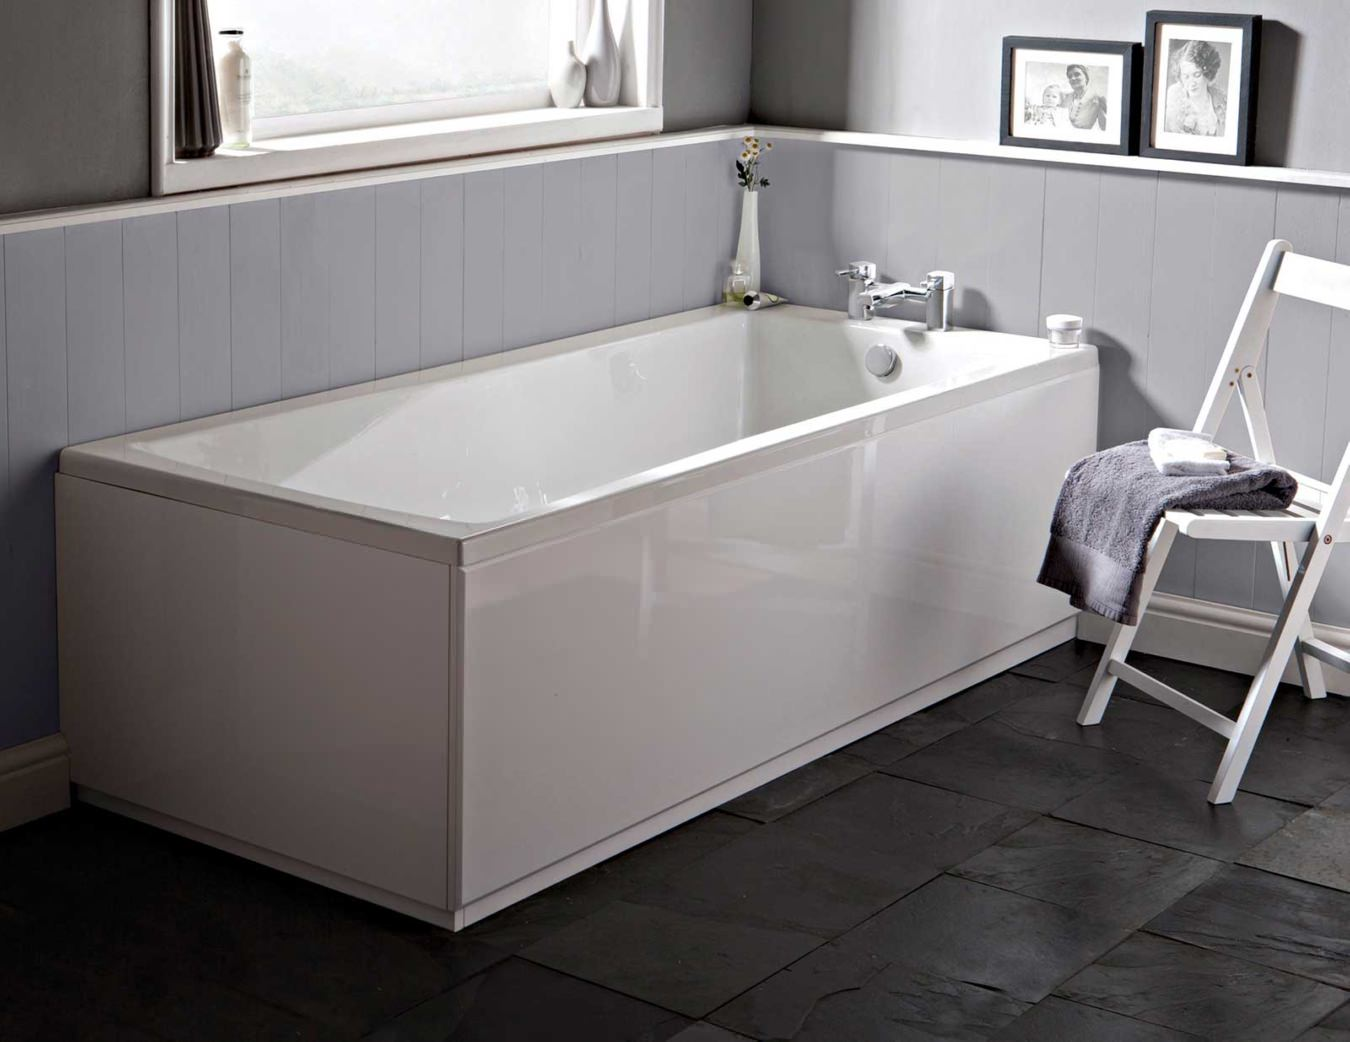 Beo Ice 1800 X 800mm Single Ended Acrylic Bath